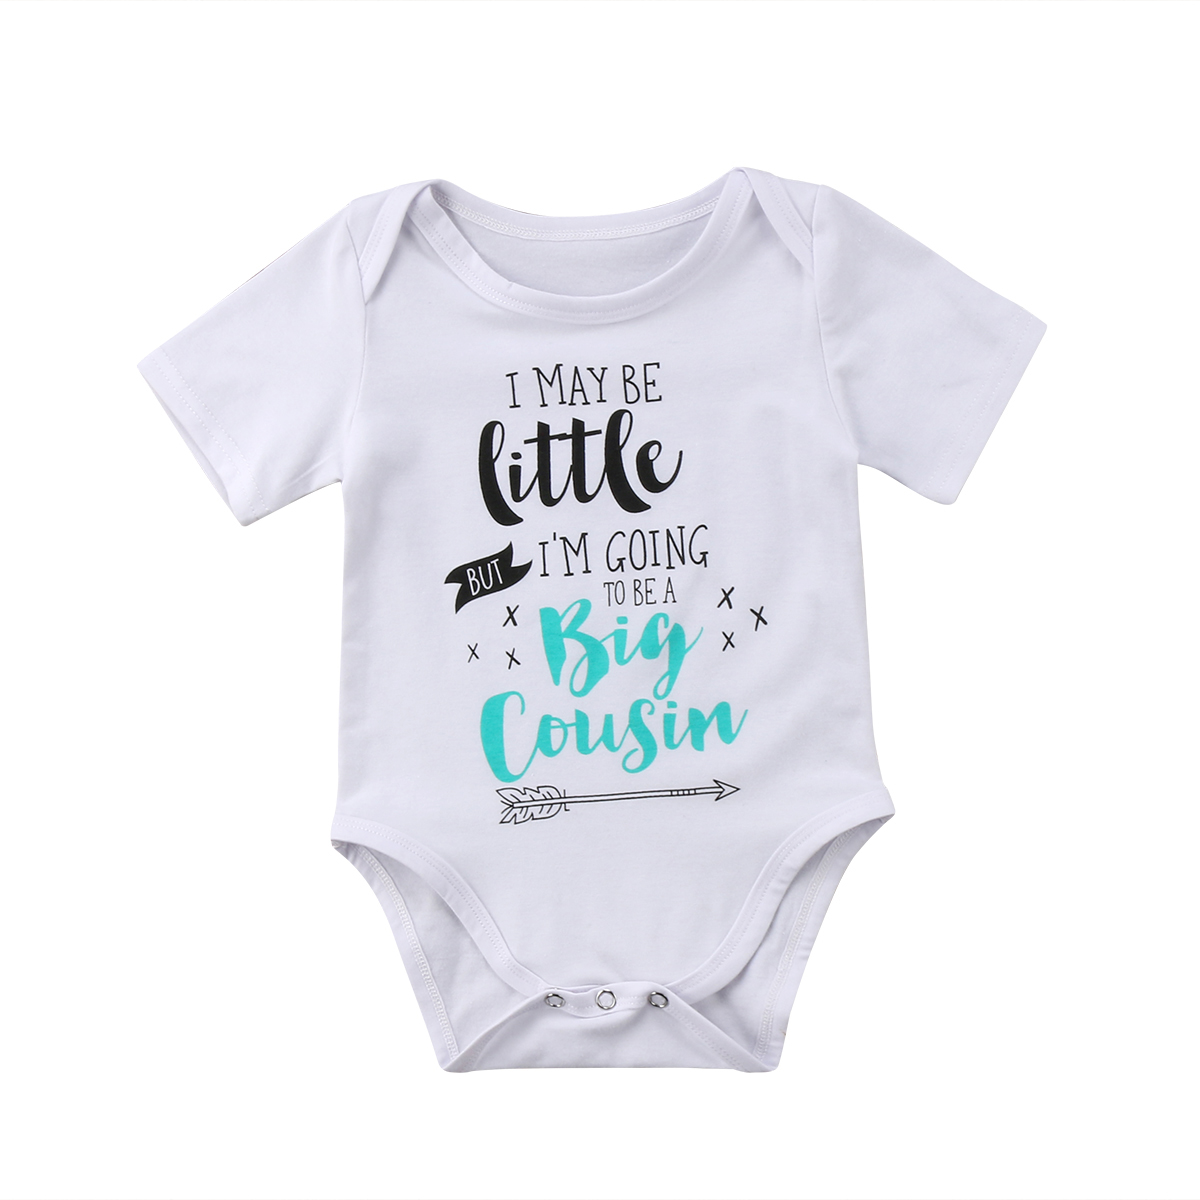 For Baby Clothes I May Be Little But I'm Going To Be A Big Cousin Short Sleeve Baby Bodysuit